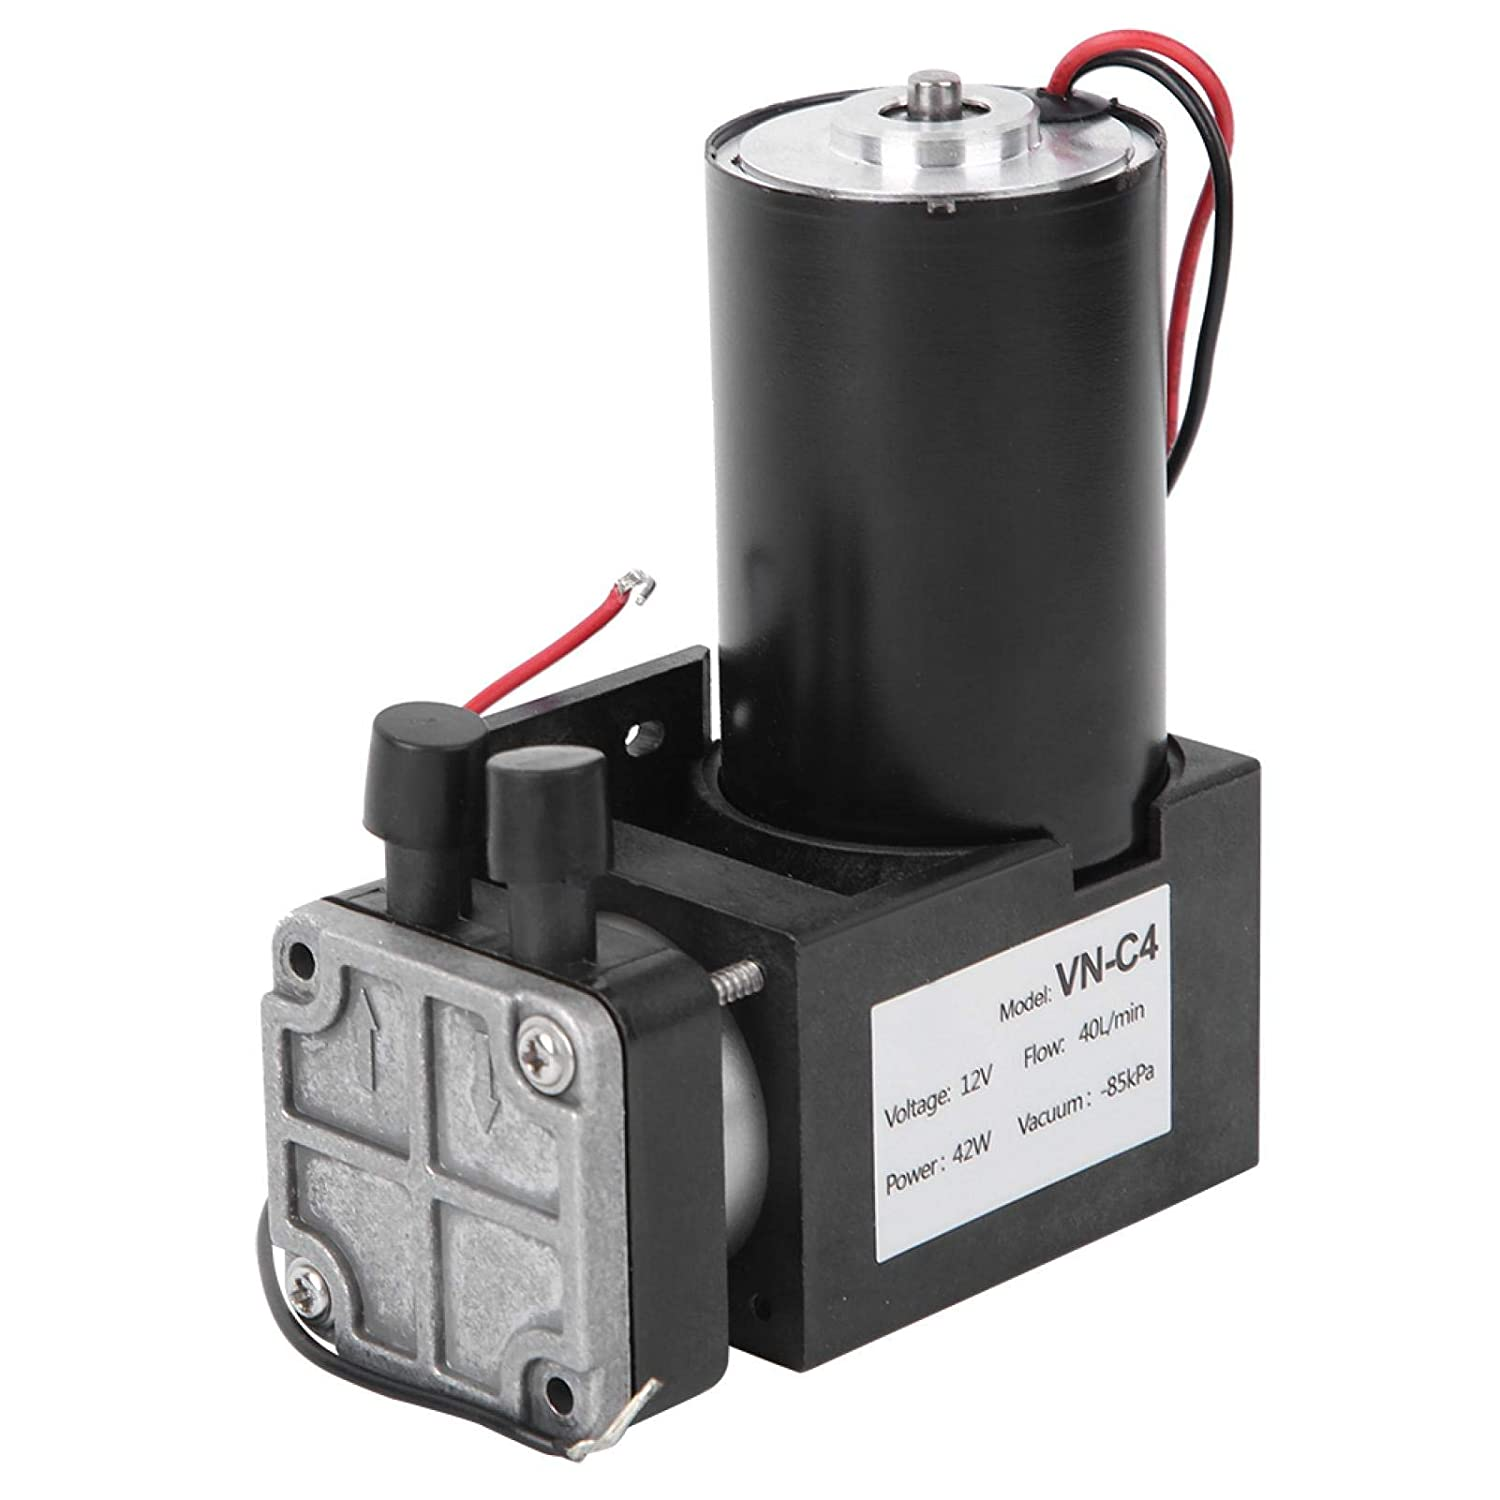 Industrial Parts Large Flow Small Suction Pump Negative Pressure Pump Low-Noise Firm Structure DC 12V Mini Vacuum Pump Brushless Pump for Vacuum Packaging